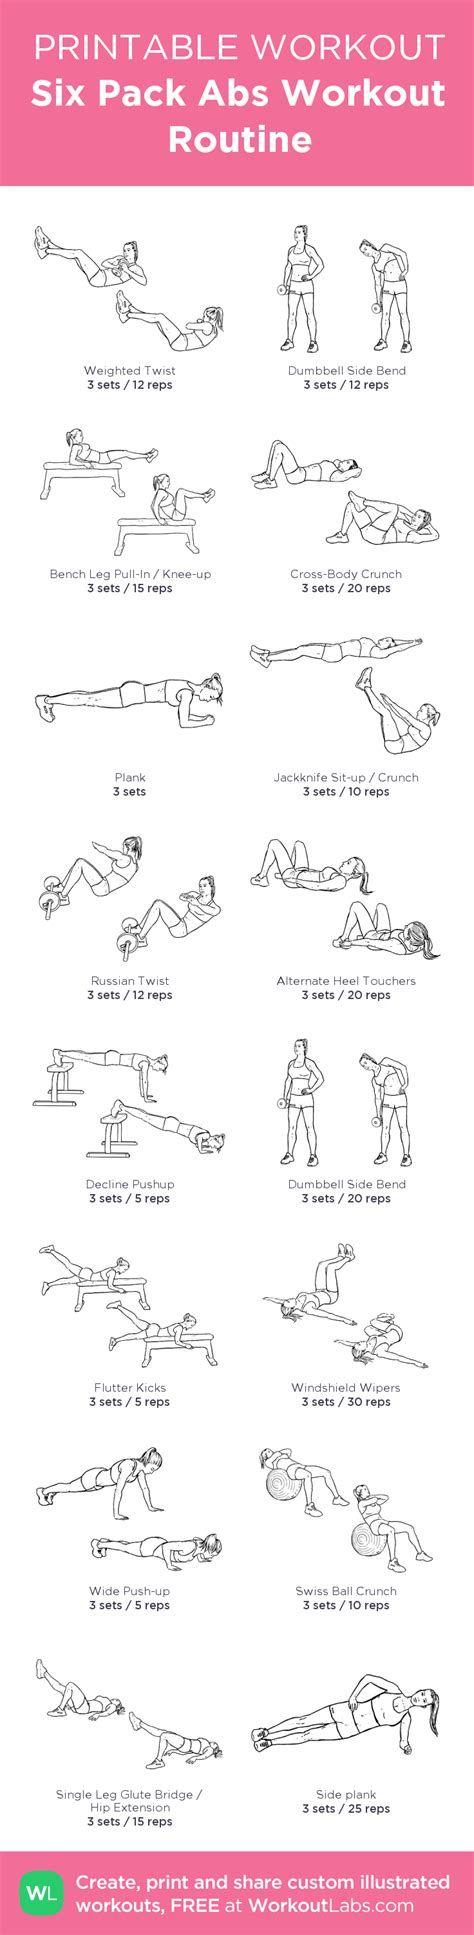 printable workout plan for the gym six pack abs workout routine my custom printable workout